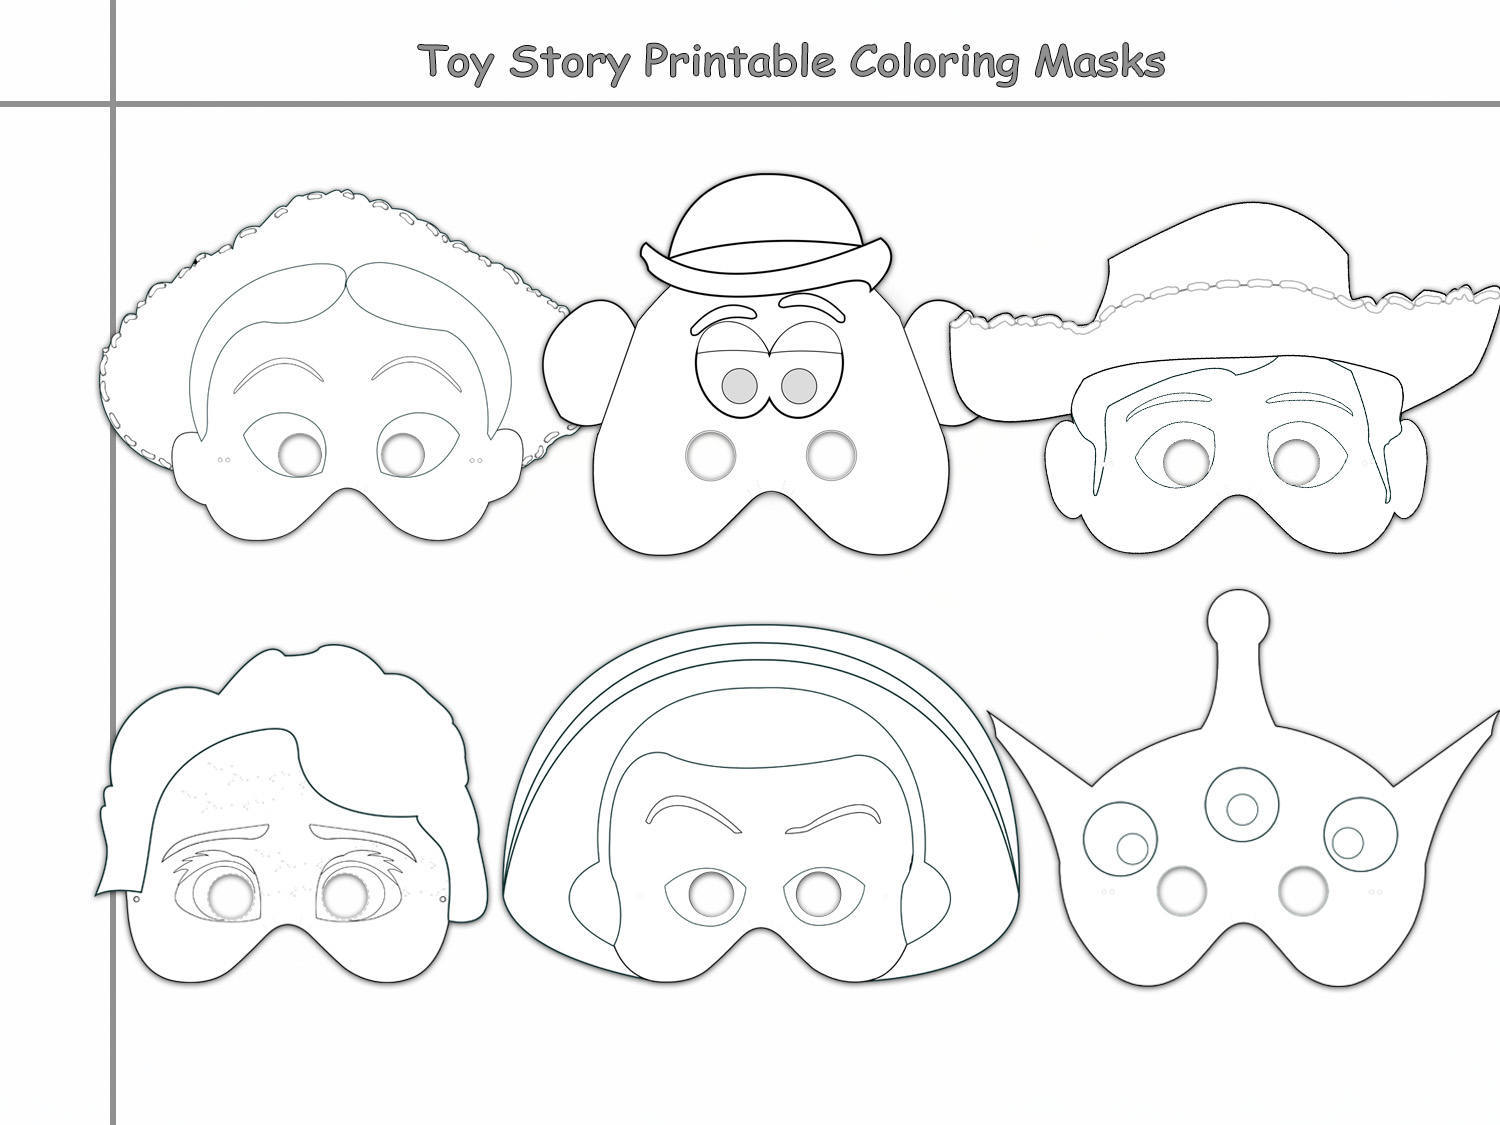 Toys Printable Coloring Masks Toy Mask By